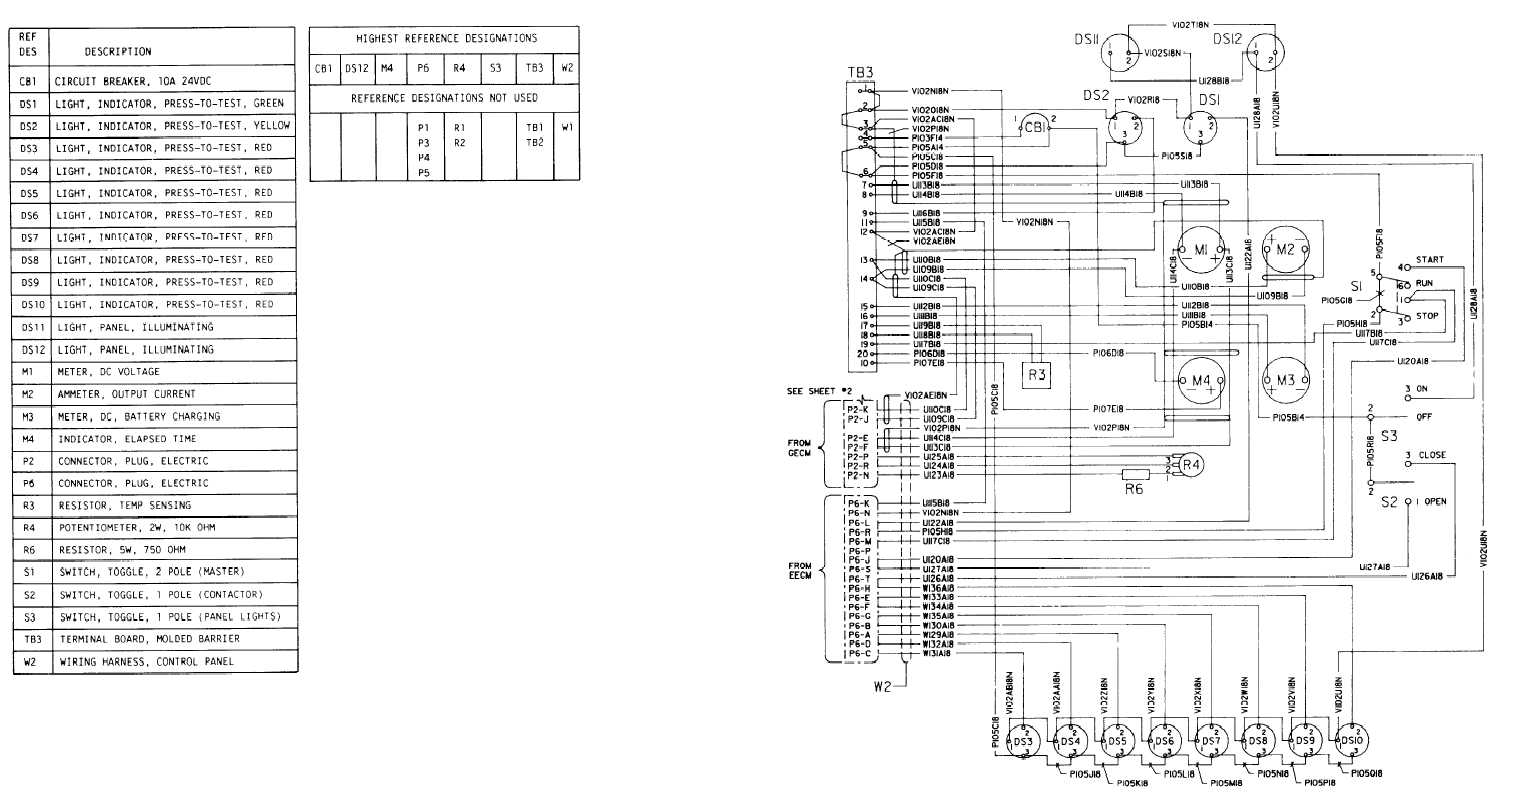 TM 5 6115 612 12_301_1 fo 4 control panel wiring diagram generator control panel wiring diagram pdf at gsmportal.co